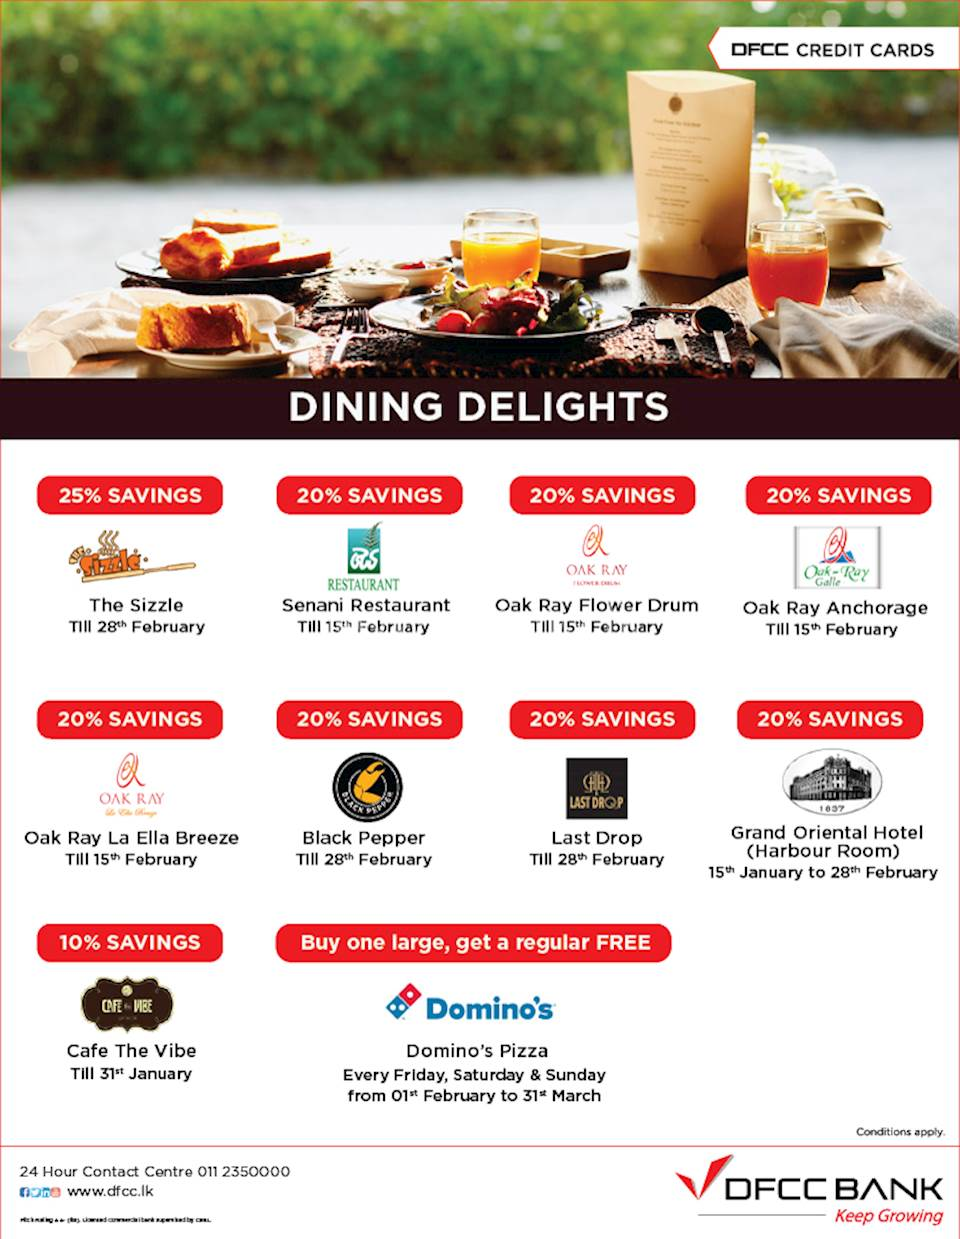 Dinning Offers with DFCC Credit Cards